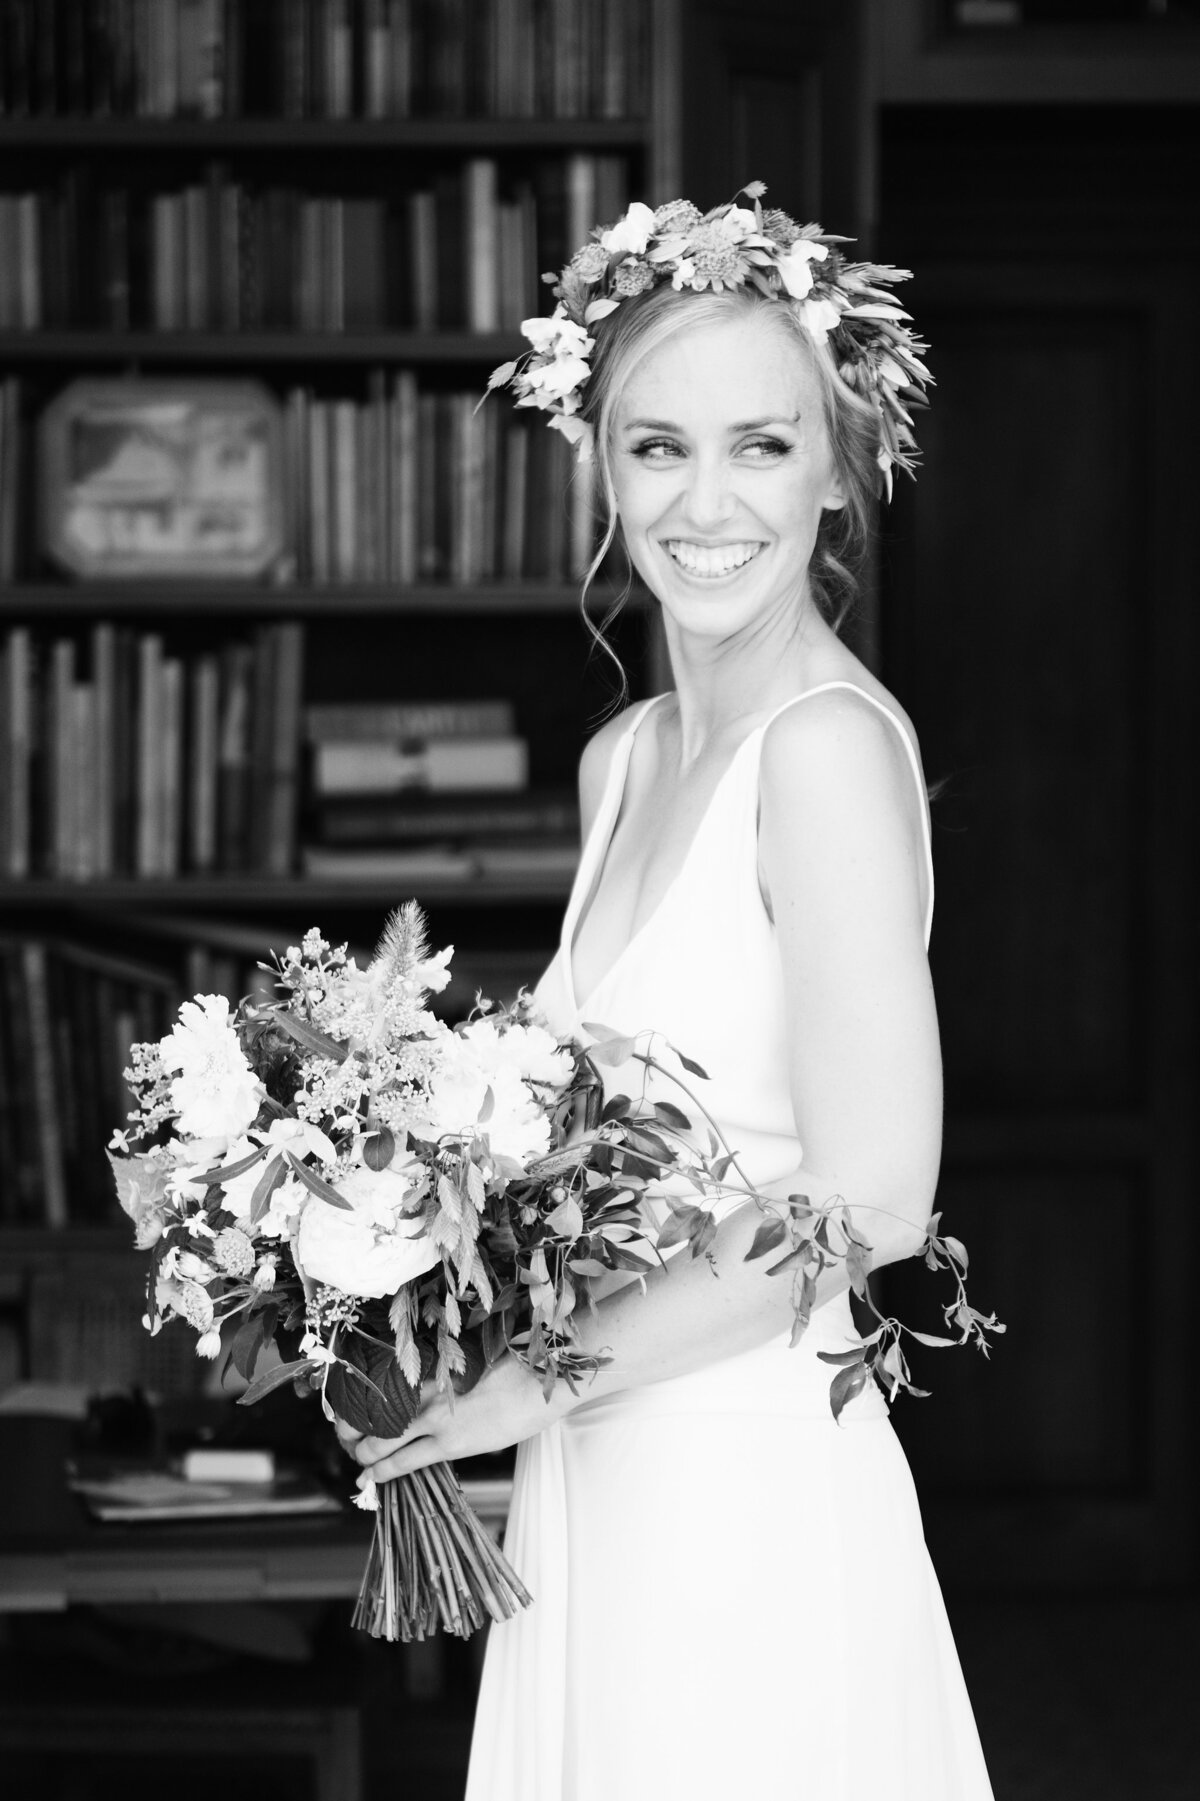 Trine_Juel_hair_and_makeupartist_wedding_franceWedding_FR_128